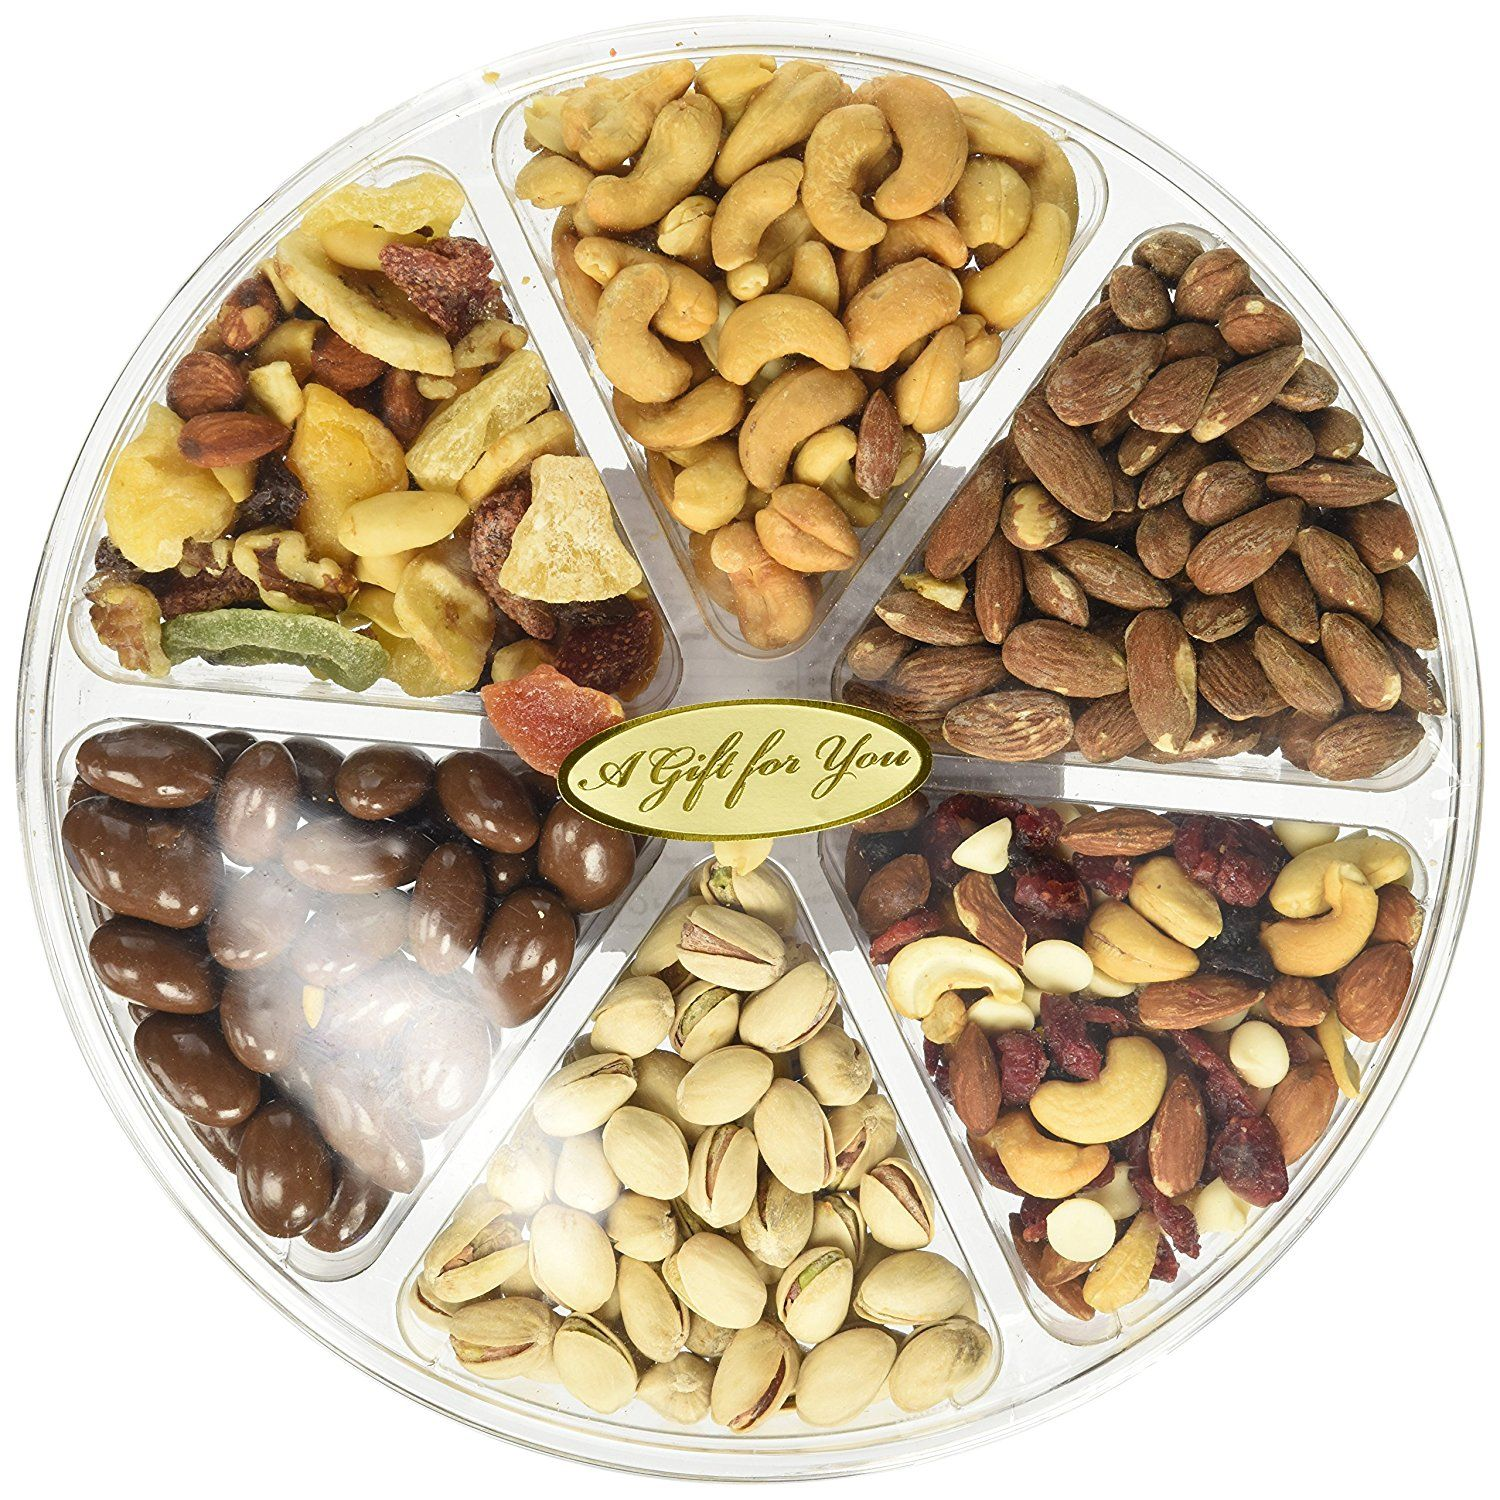 California Natural Nuts A Freshly Roasted Nut Gift Tray 2 Lbs A Delicious Salted Almonds Buttery Cashews Tasty Gourmet Nuts Healthy Food Gifts Food Gifts